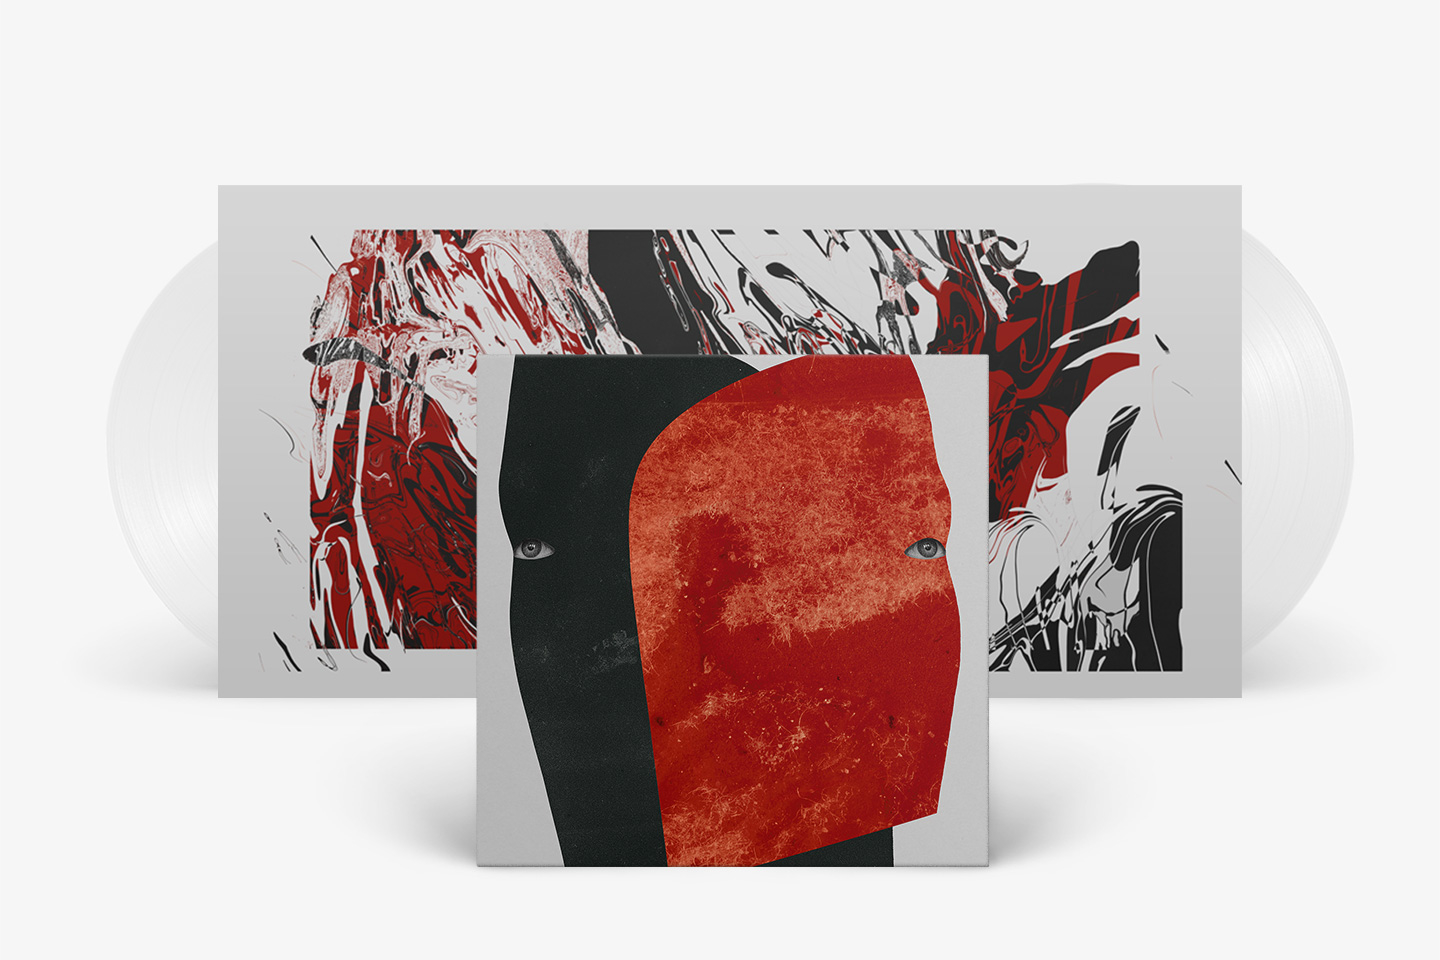 Rival consoles persona packshot